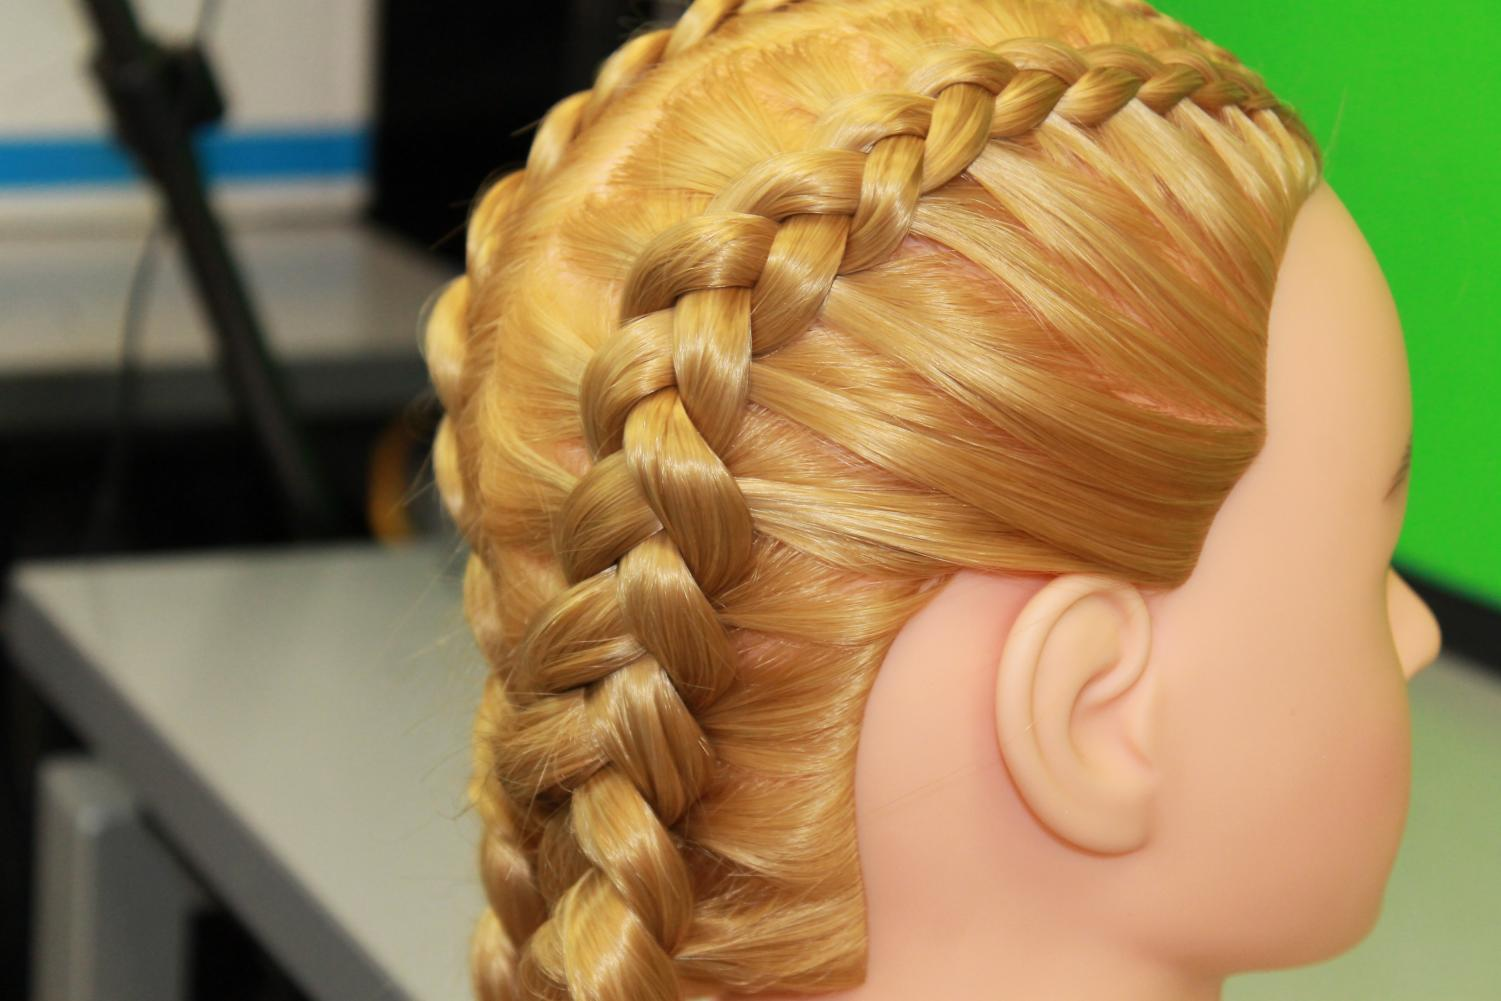 Continue+this+pattern+until+you+have+no+more+hair+to+braid.+Then%2C+tie+it+off+with+an+elastic.